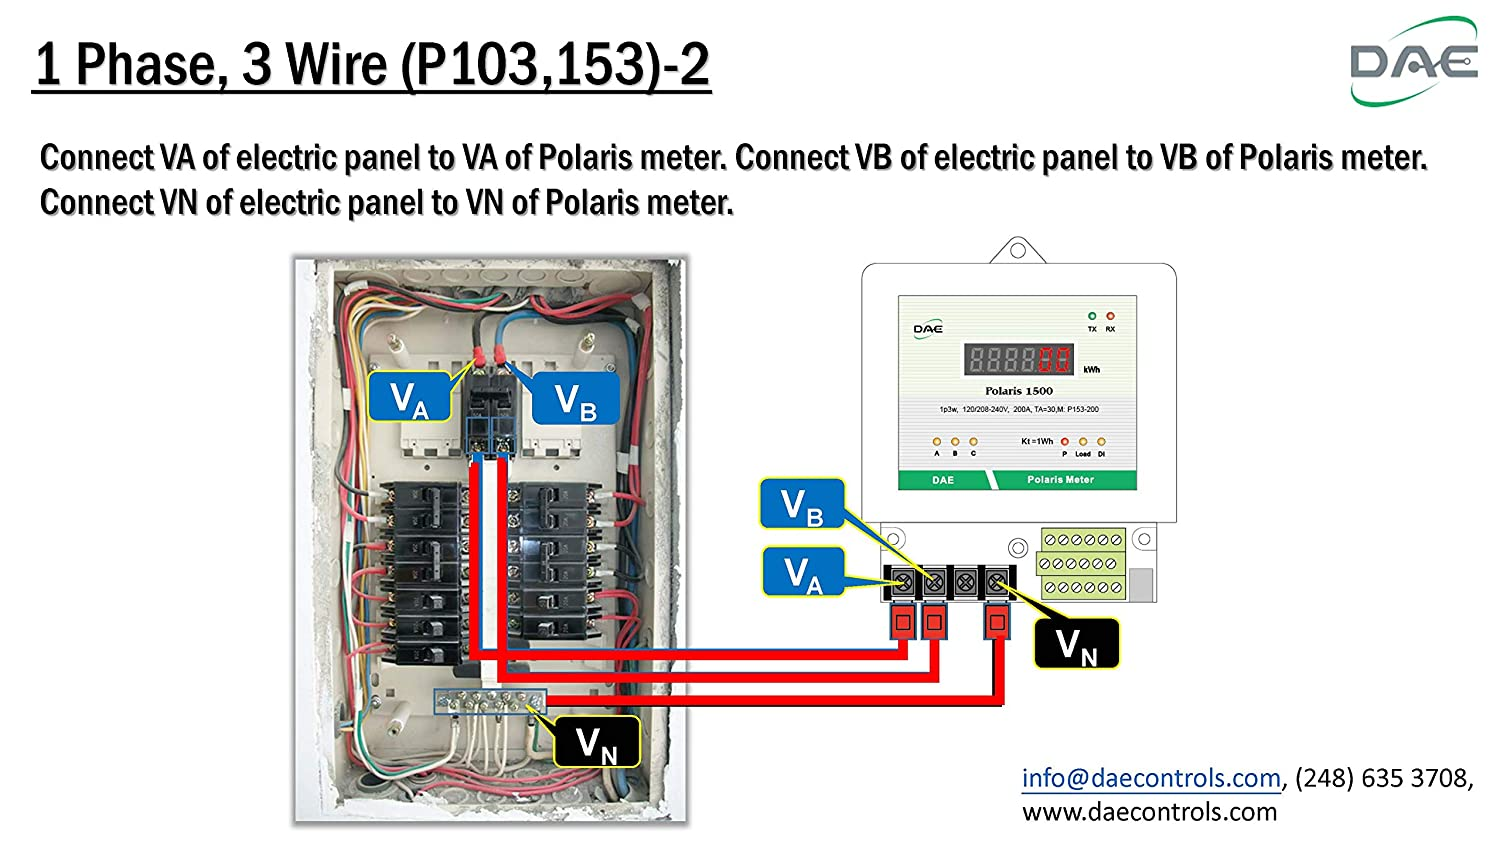 Dae P153 200 S Kit Ul Kwh Smart Submeter 1 Or 2 Phase Hot Wire Single Meter Wiring Diagram 200a 120 240v Cts Rs485 Electrical Boxes Amazon Canada